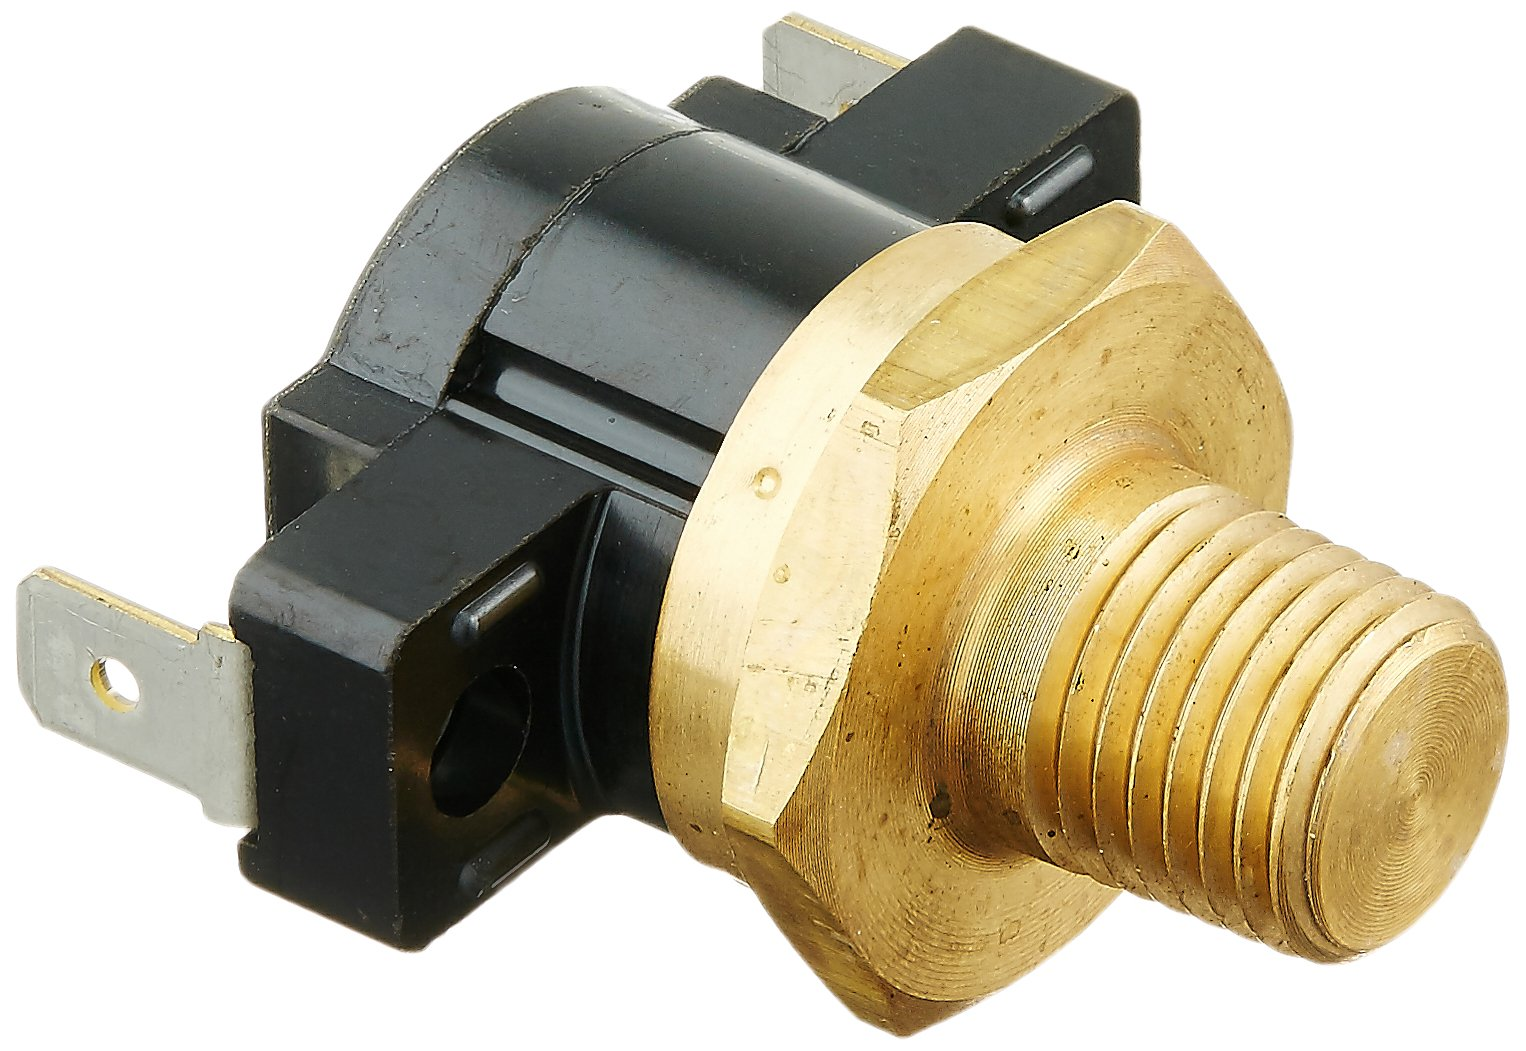 Pentair 471694 150-Degrees Fahrenheit Hi-Limit Thermostat Replacement MiniMax Pool and Spa Heater